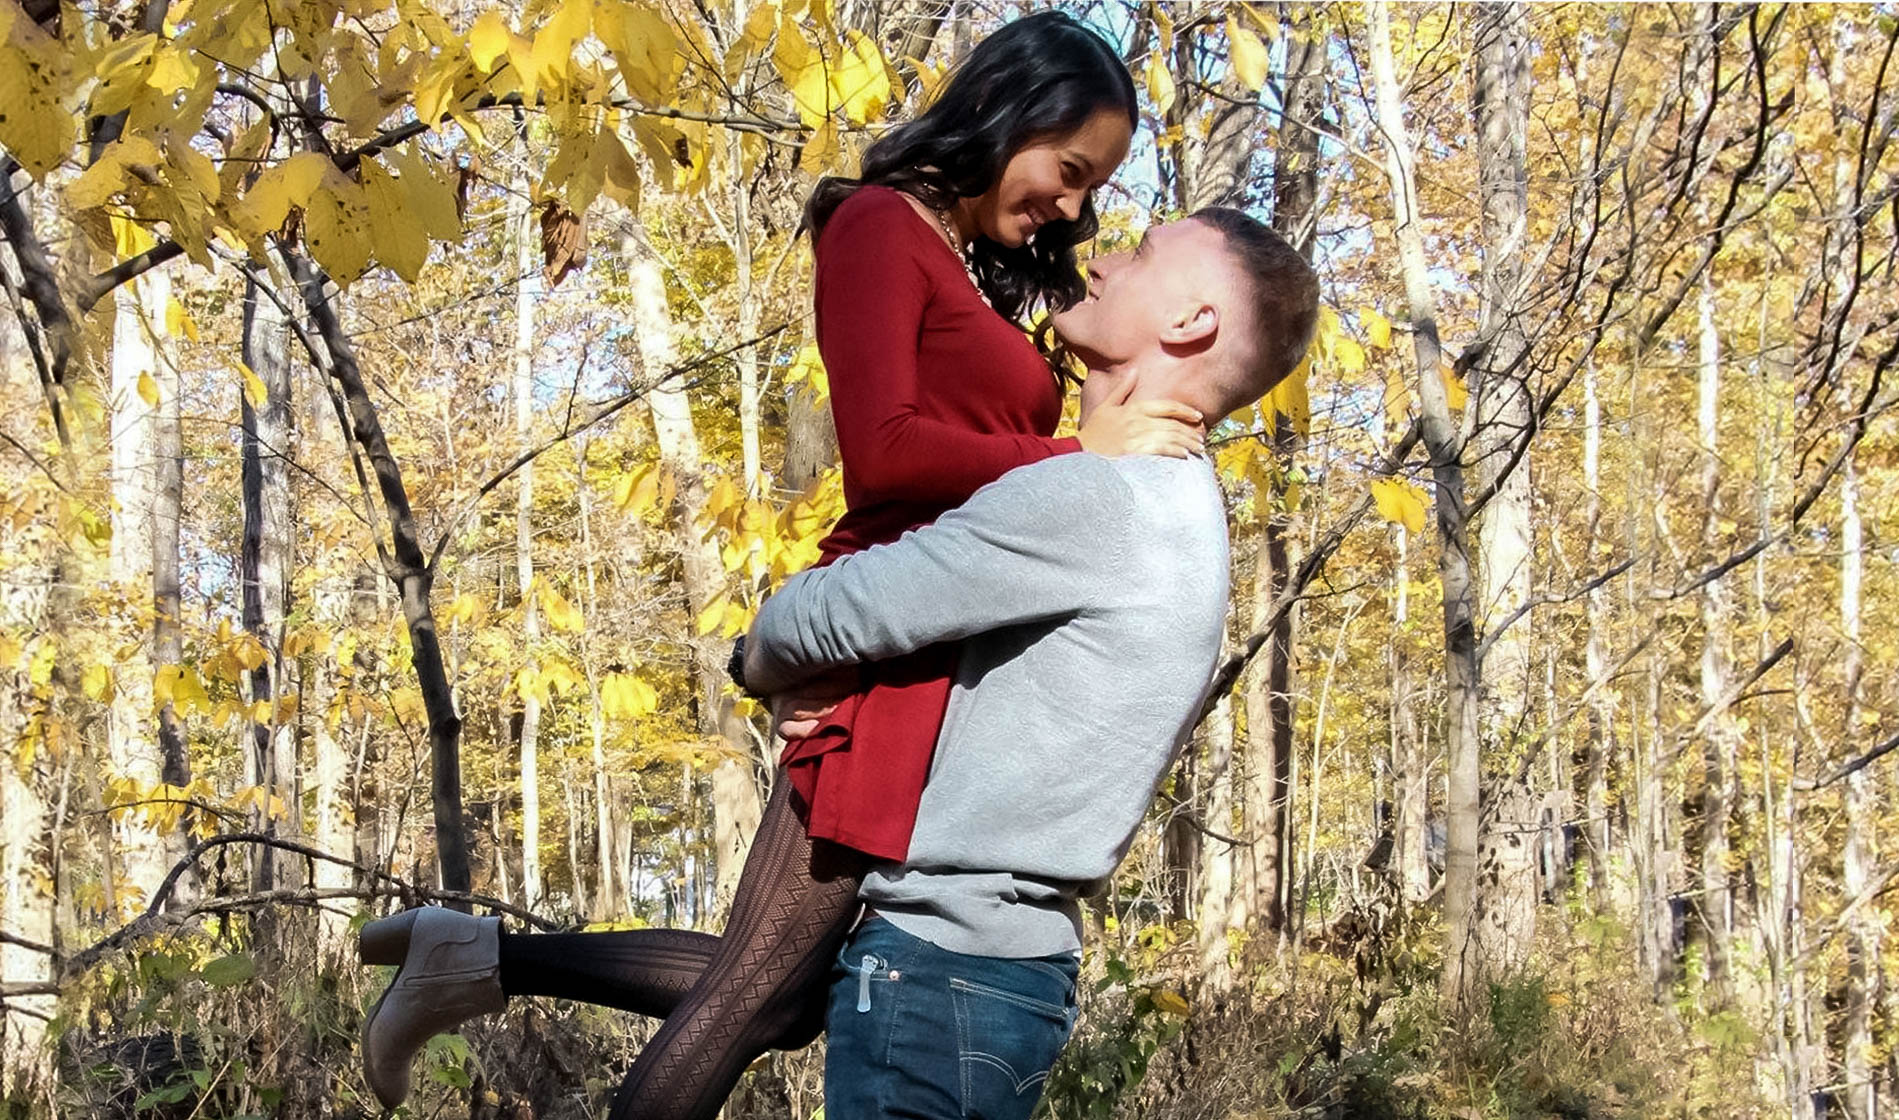 a newly engaged couple in the woods during autumn